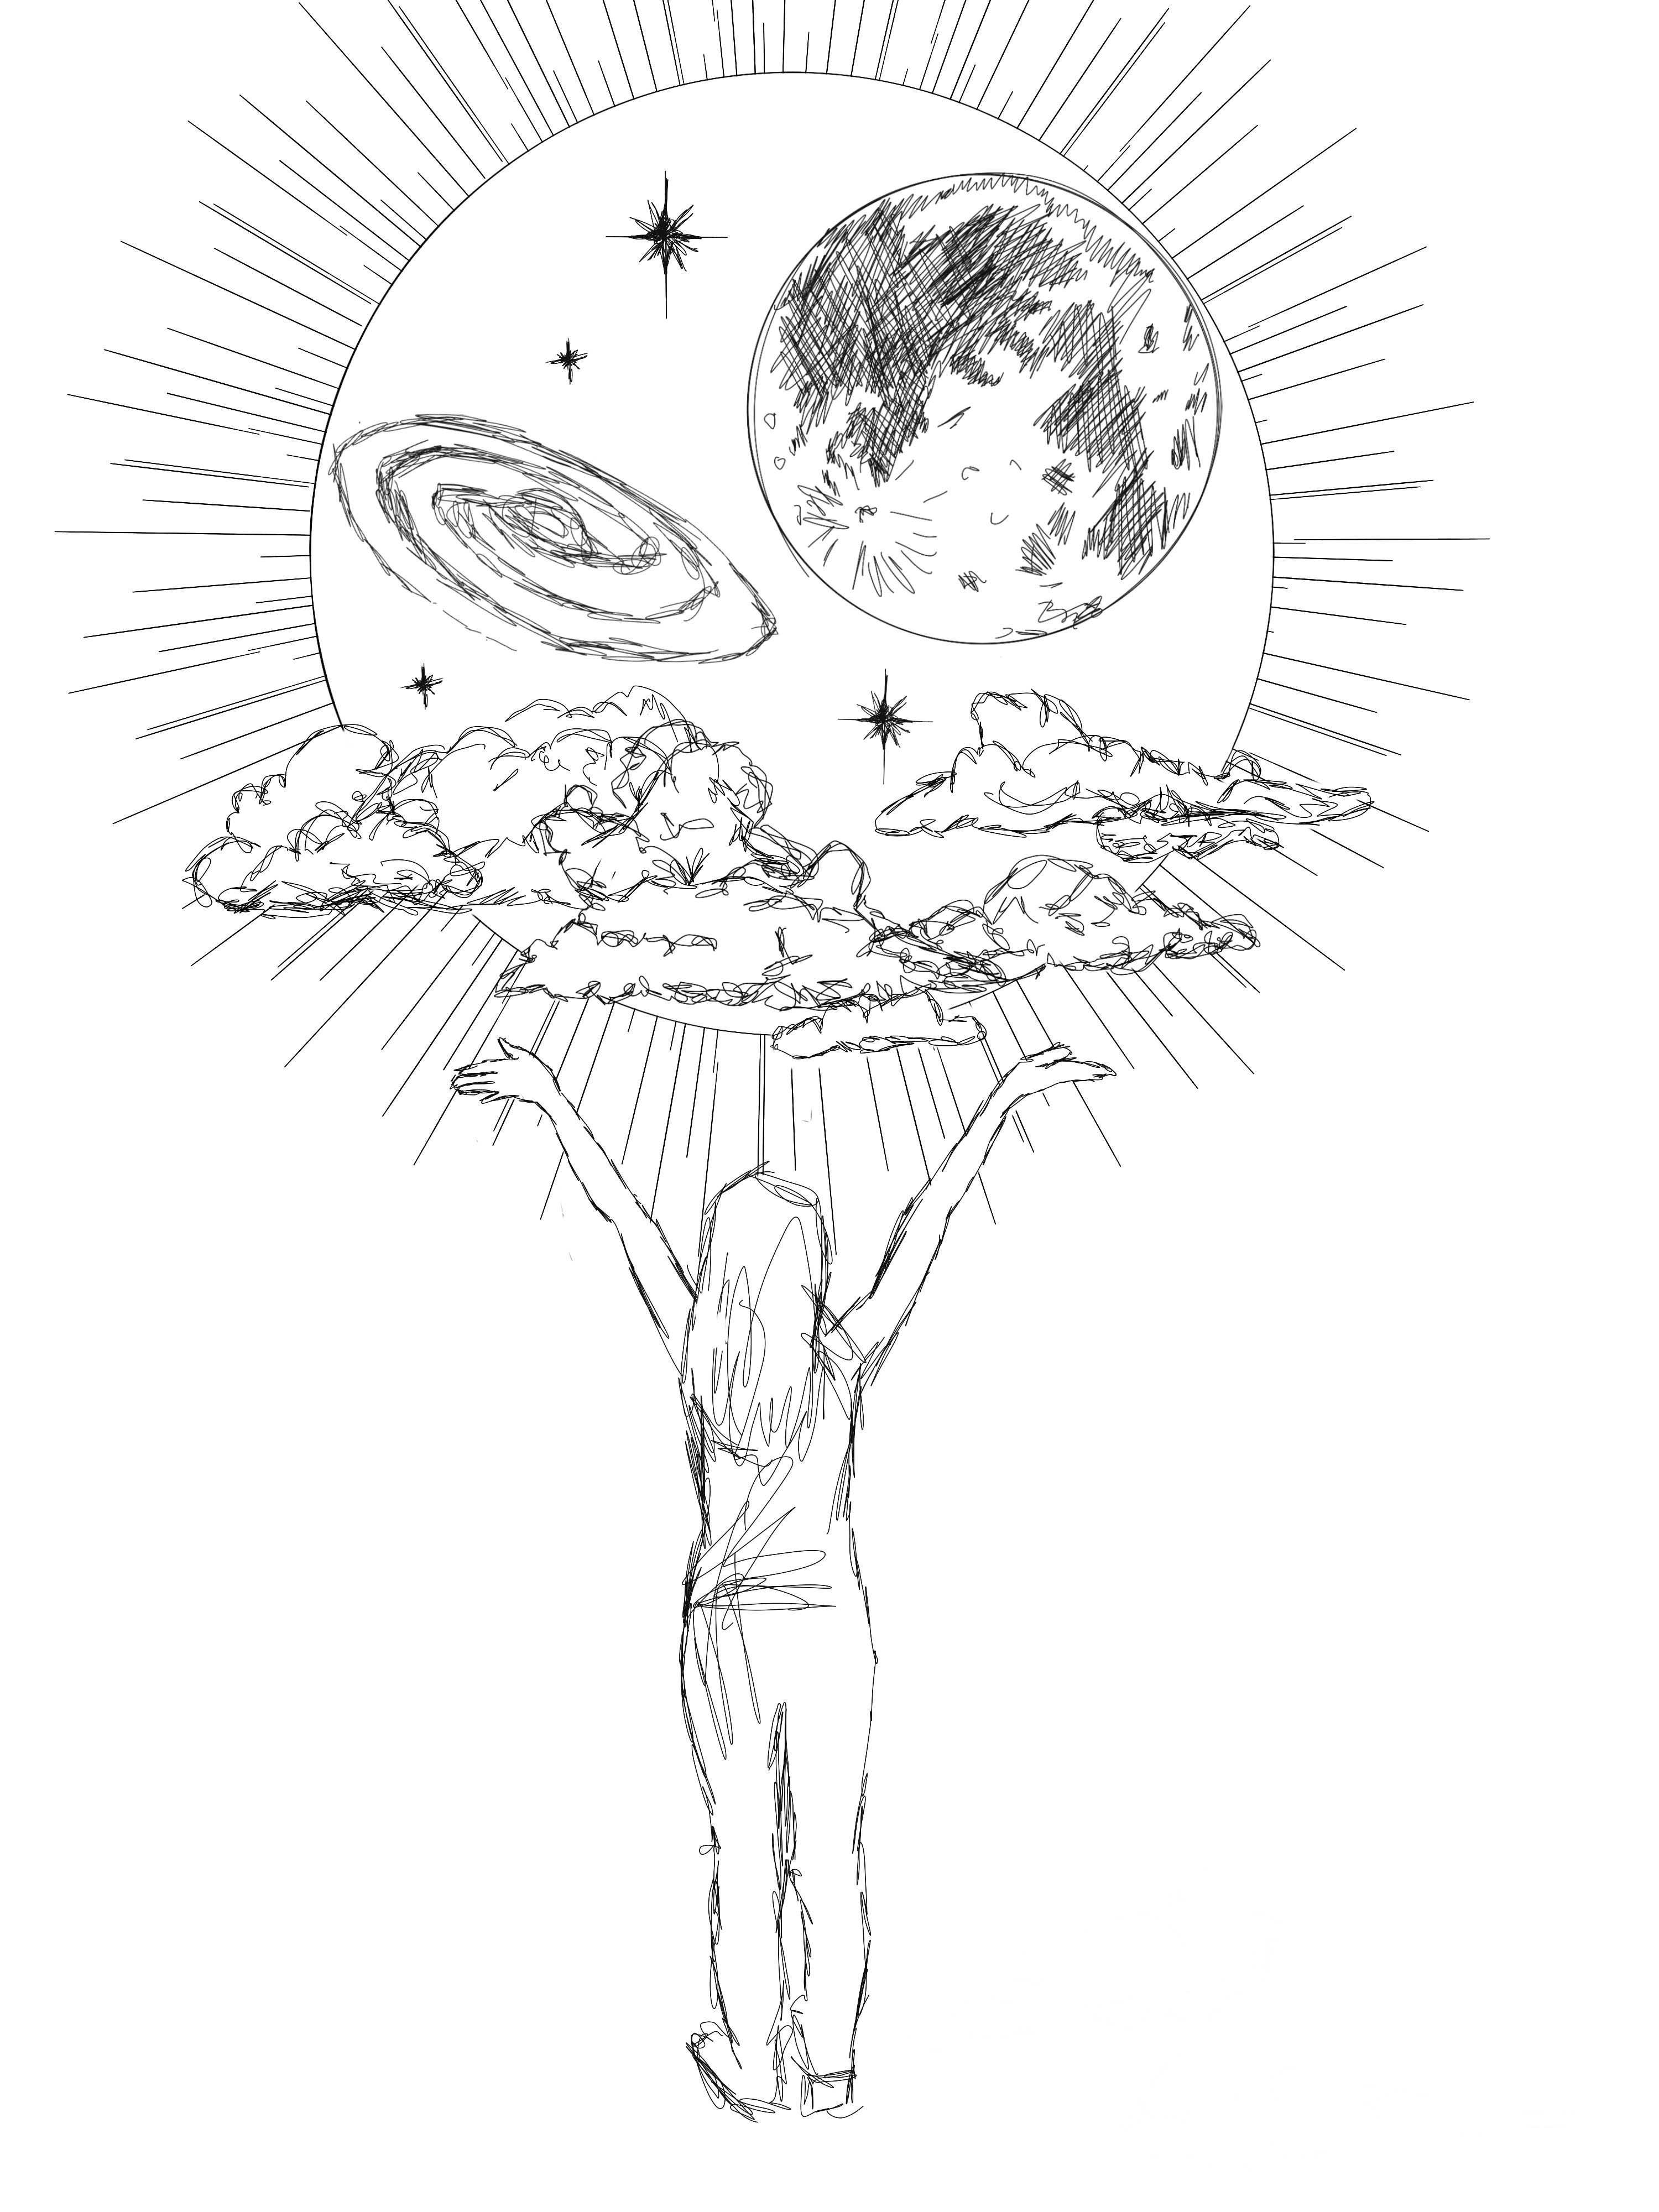 NU '19 Julie Malewicz drew this as a special design for our Lakota guests -- it was included on the sweatshirts they received as a gift from the Society of Physics Students, March 2019